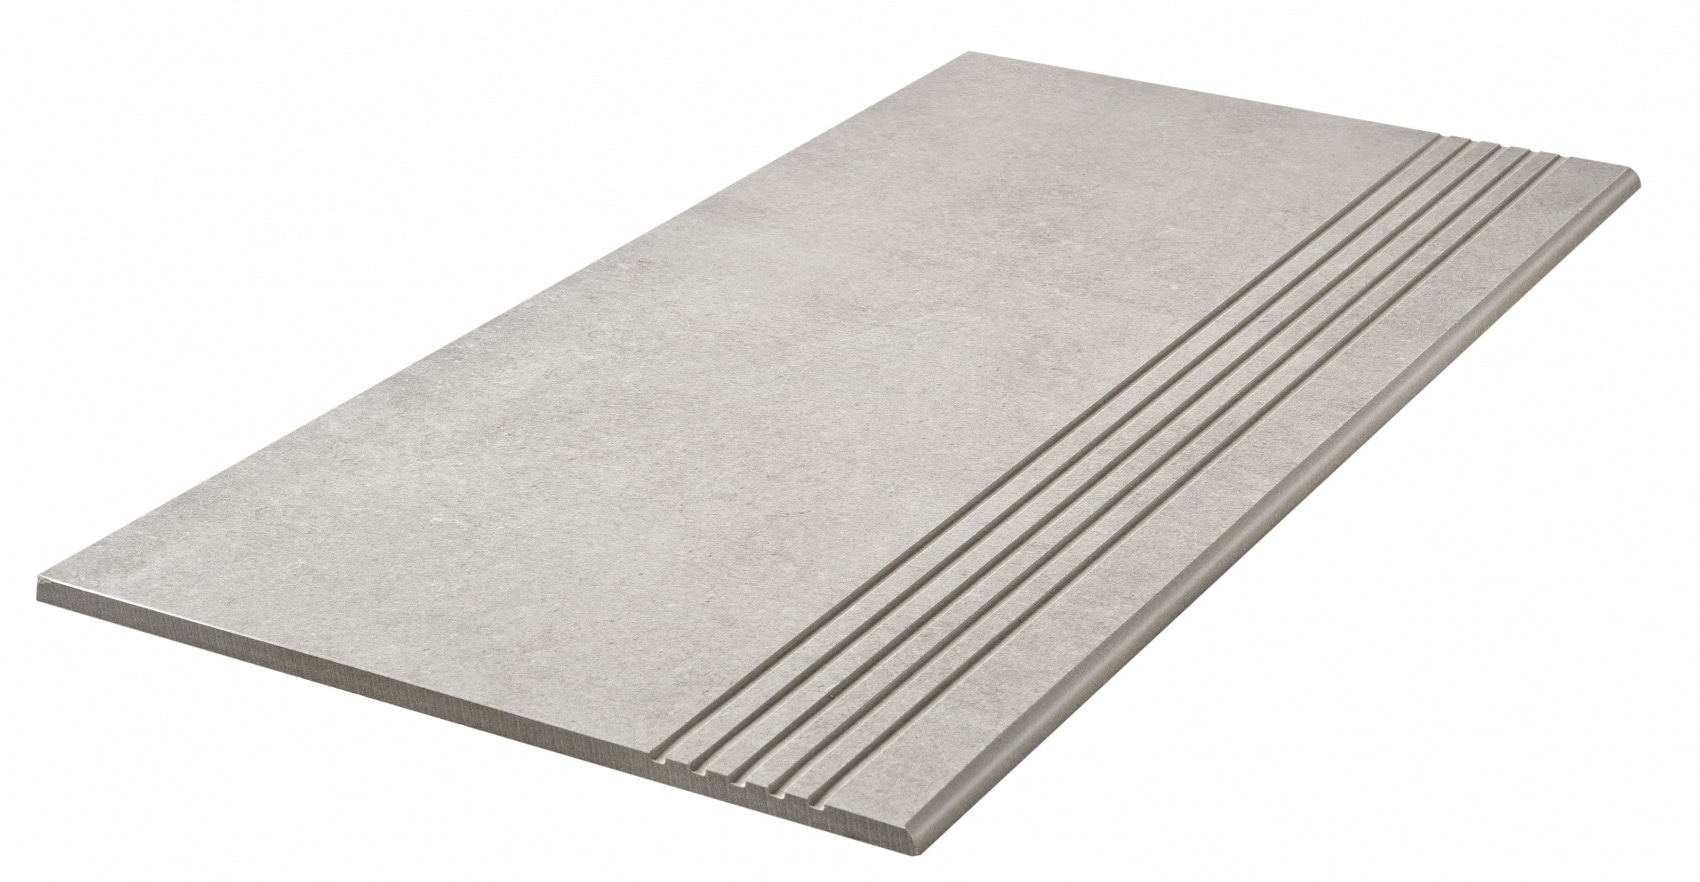 Bricmate J Step Limestone Light GREY 297x596 (mm)